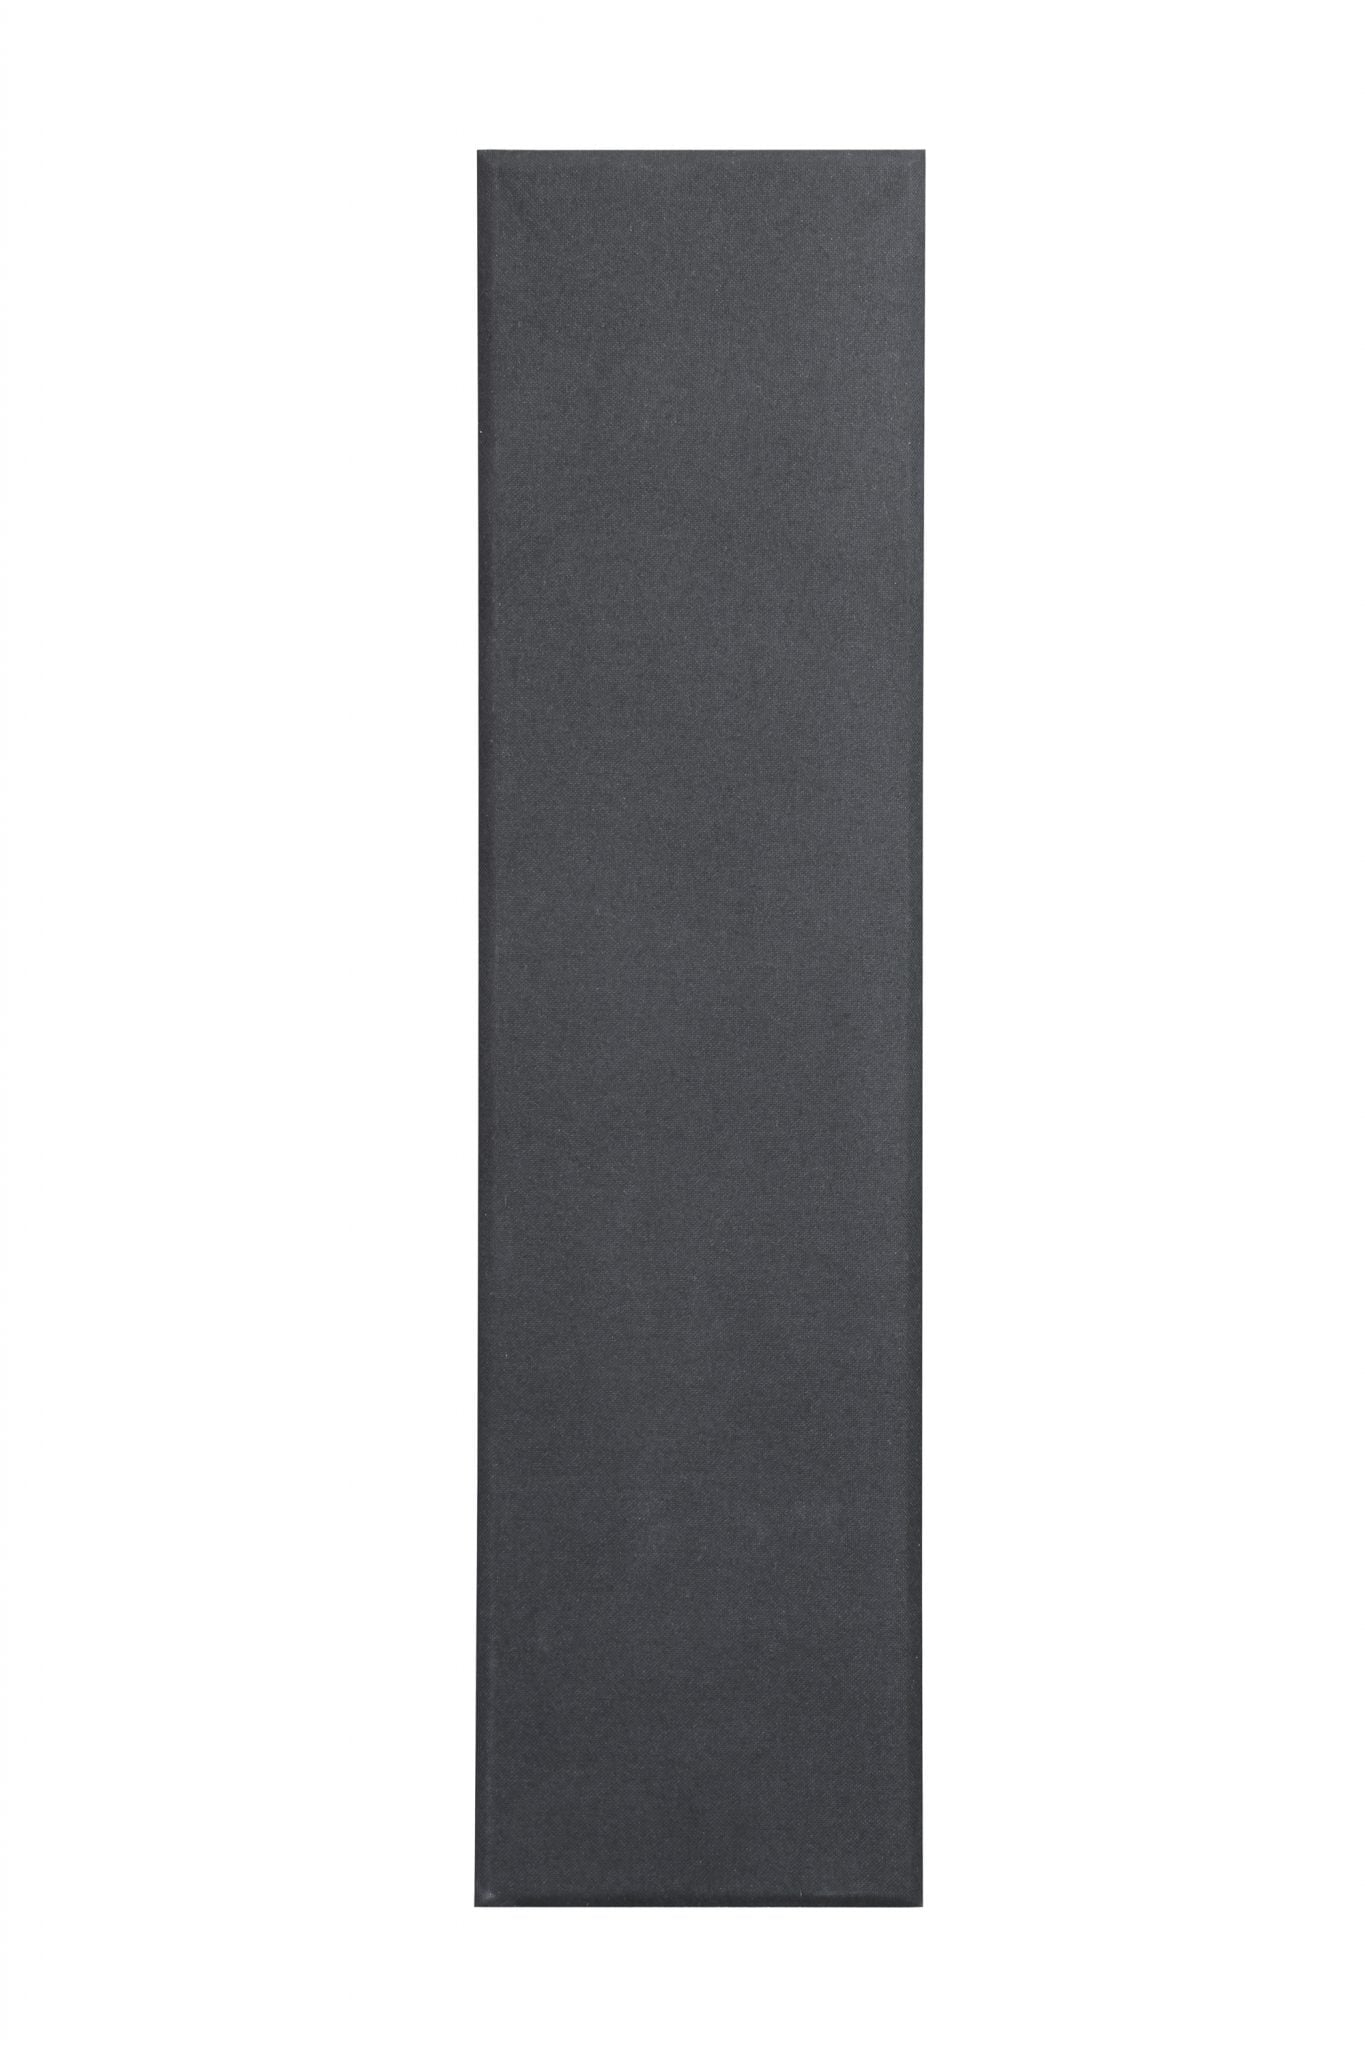 Broadway Acoustic Panels - Control Columns